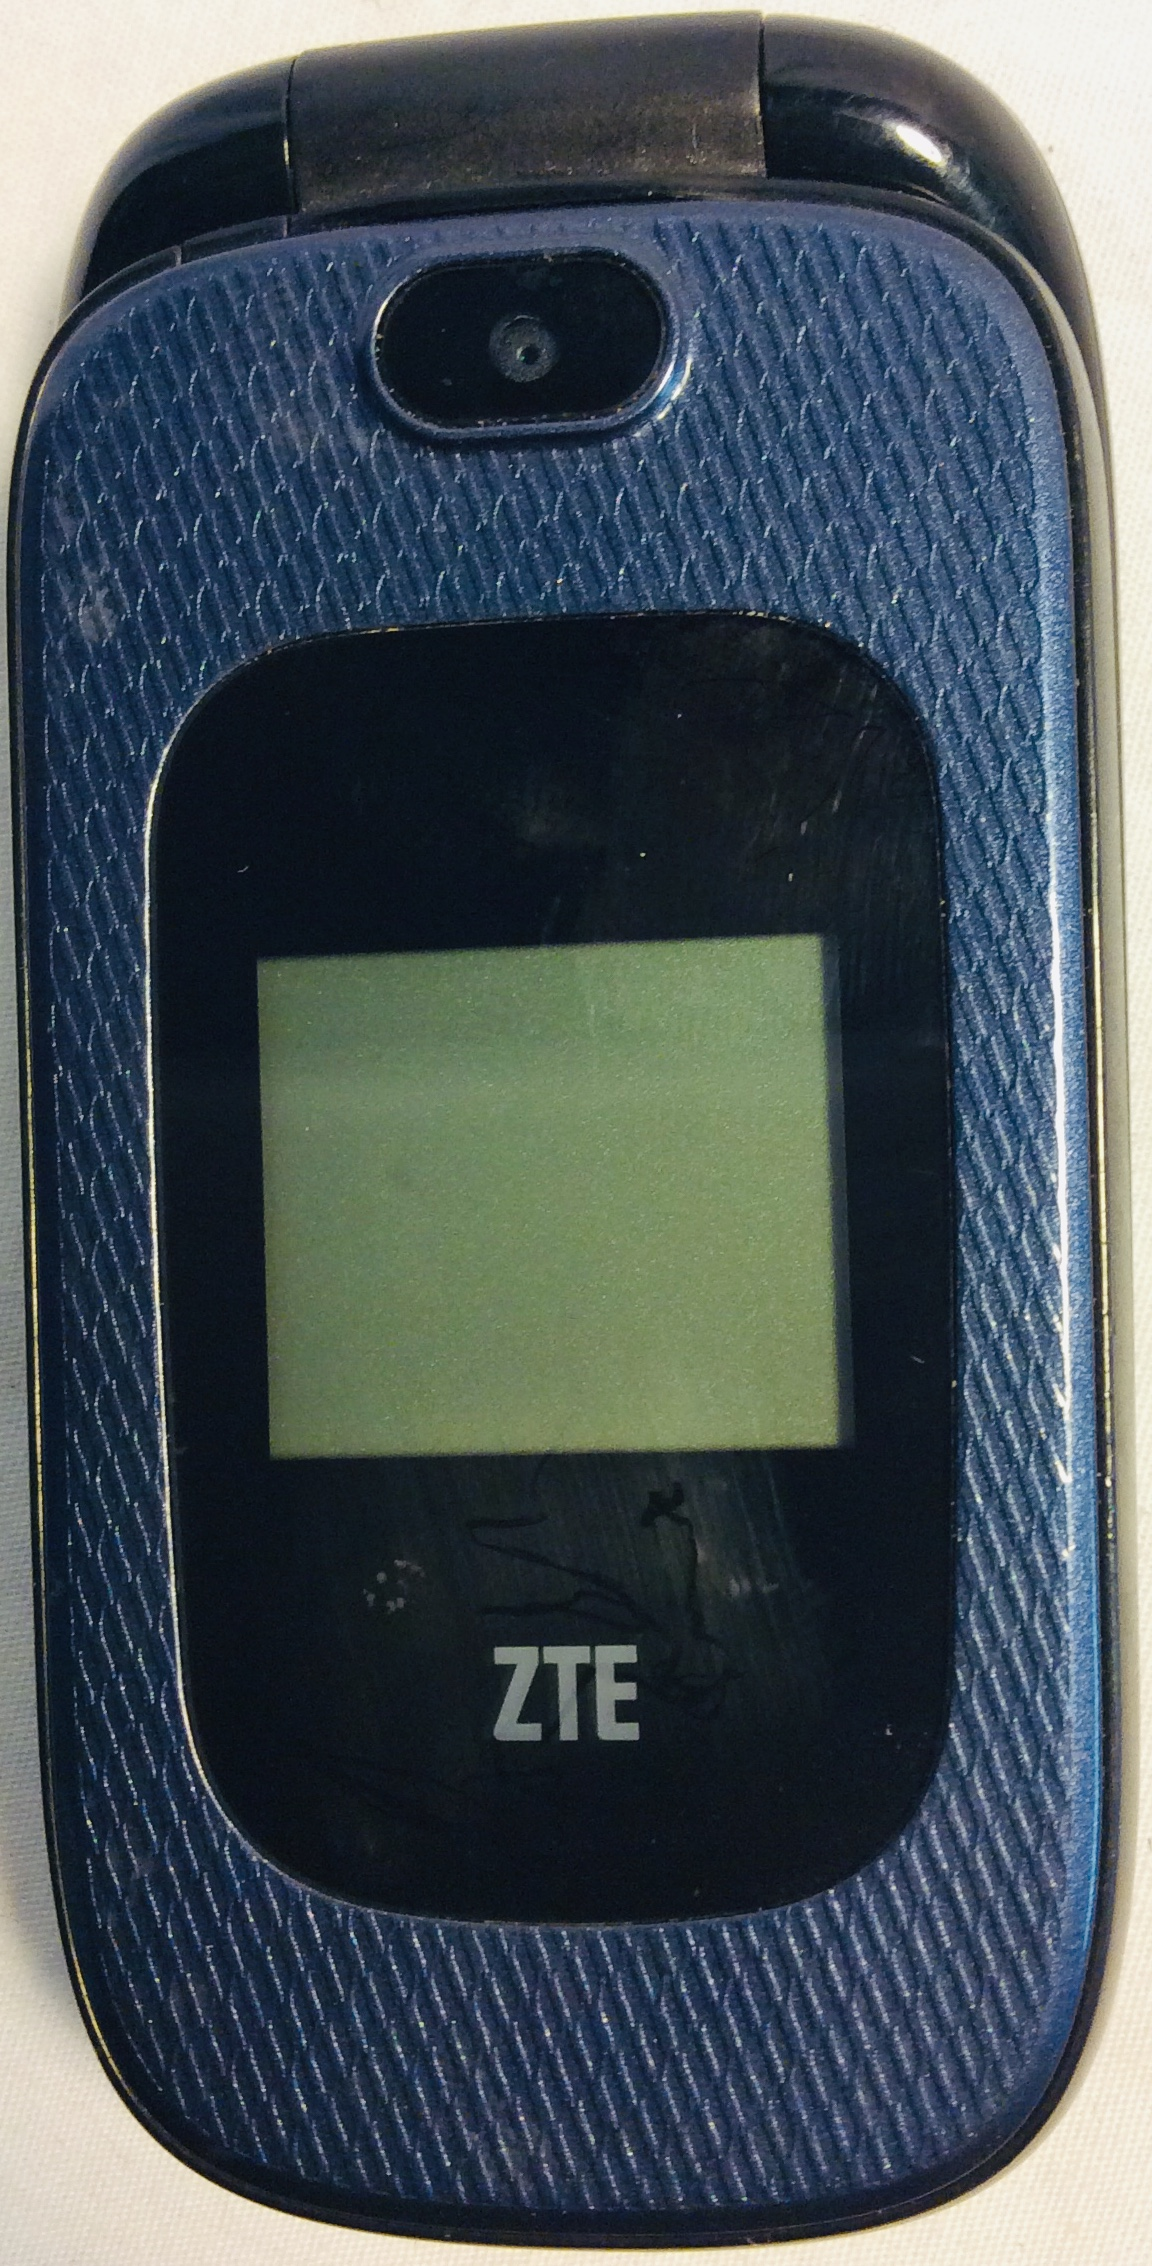 Burner phone ZTE  - Working